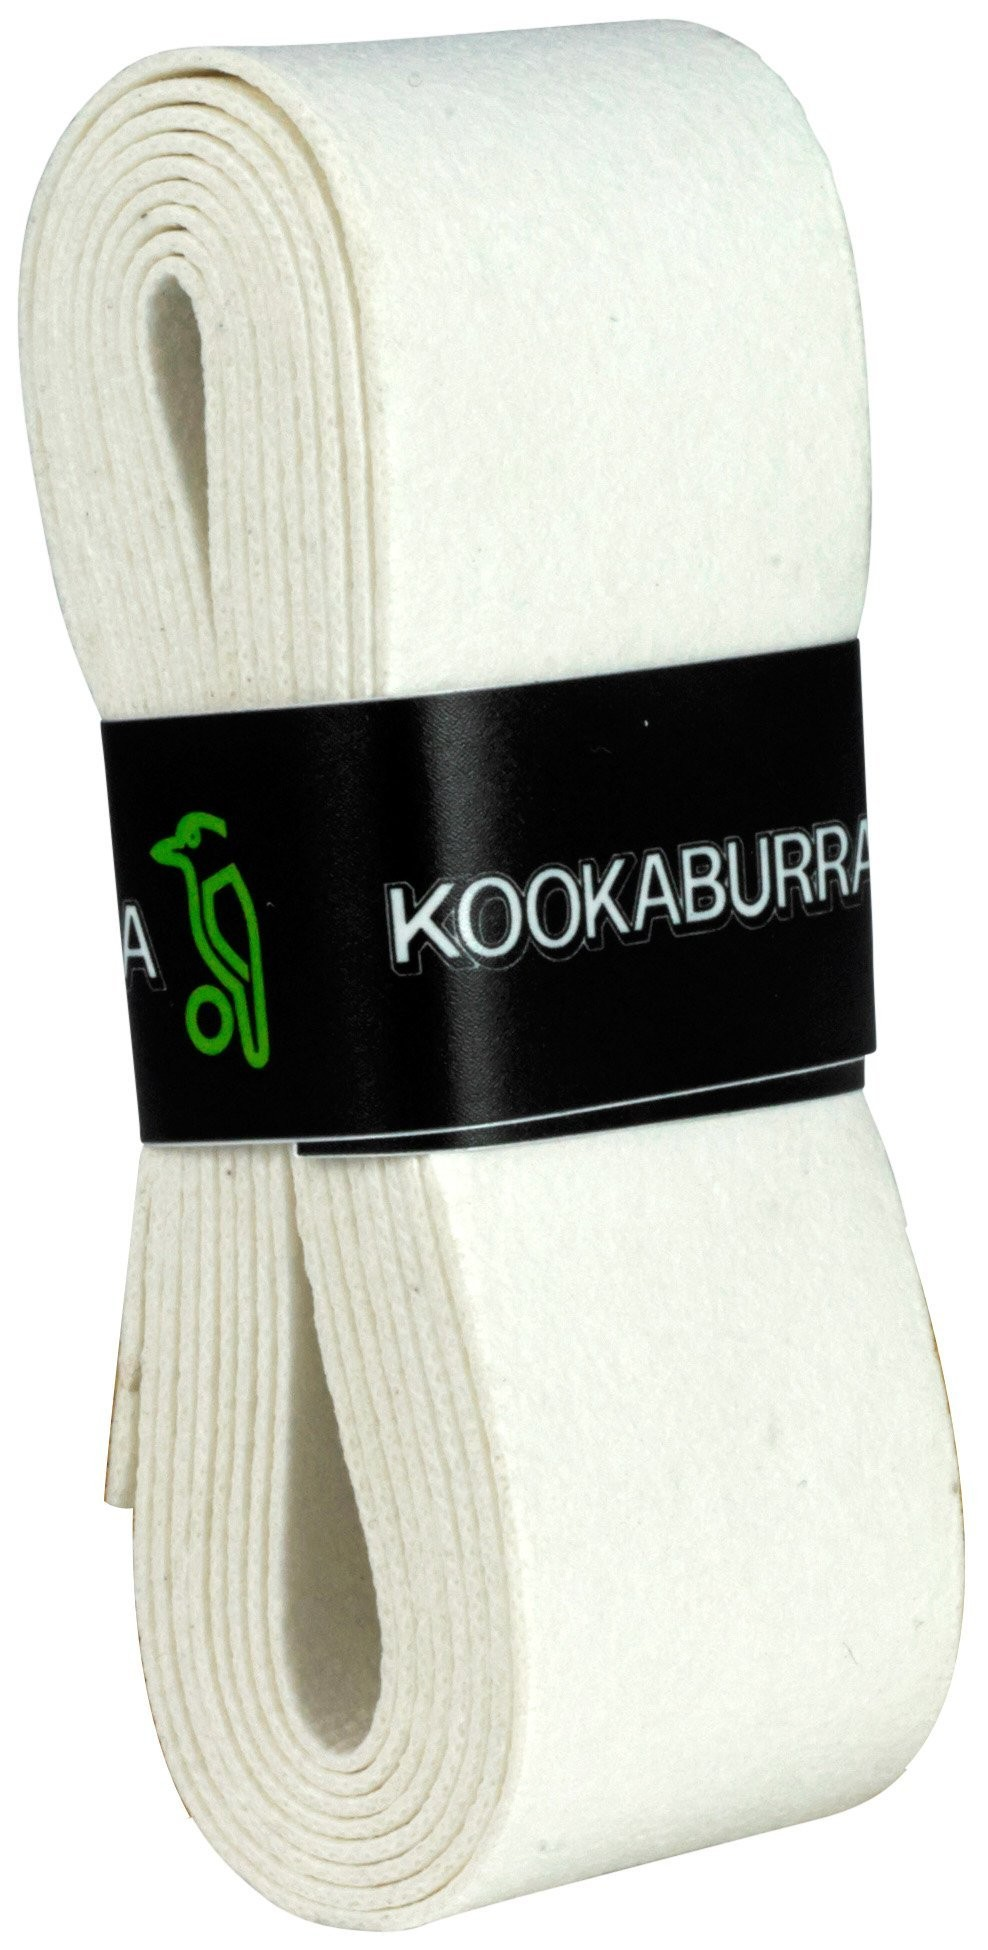 Kookaburra Pro-Cushion Grip - White